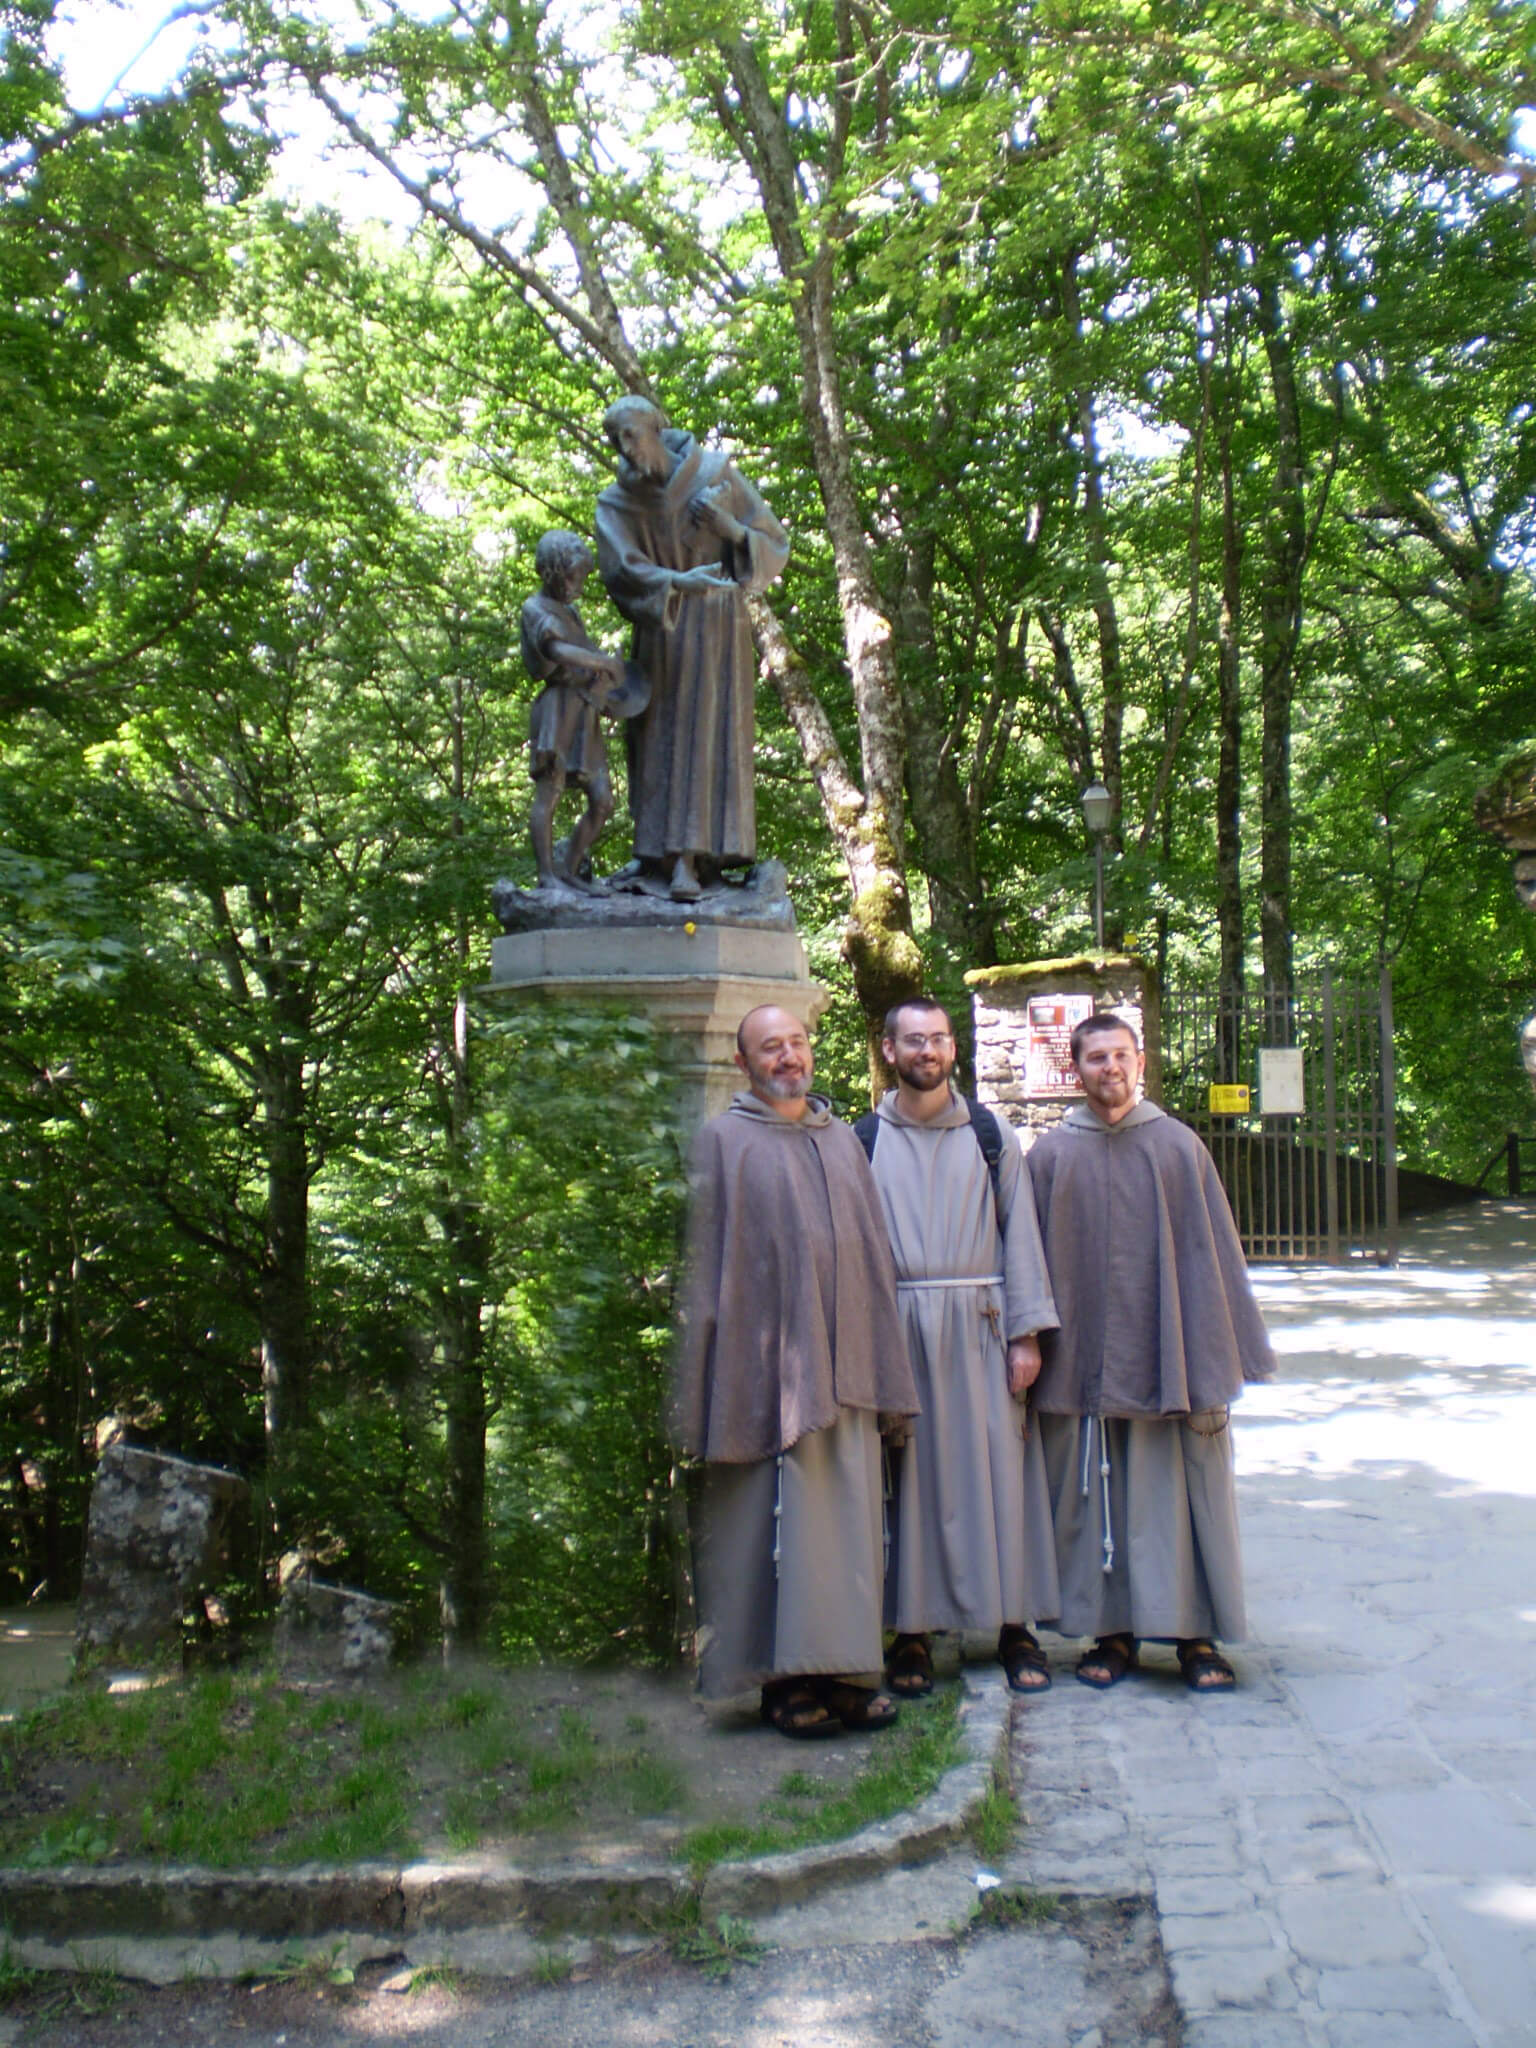 Friars in Assisi